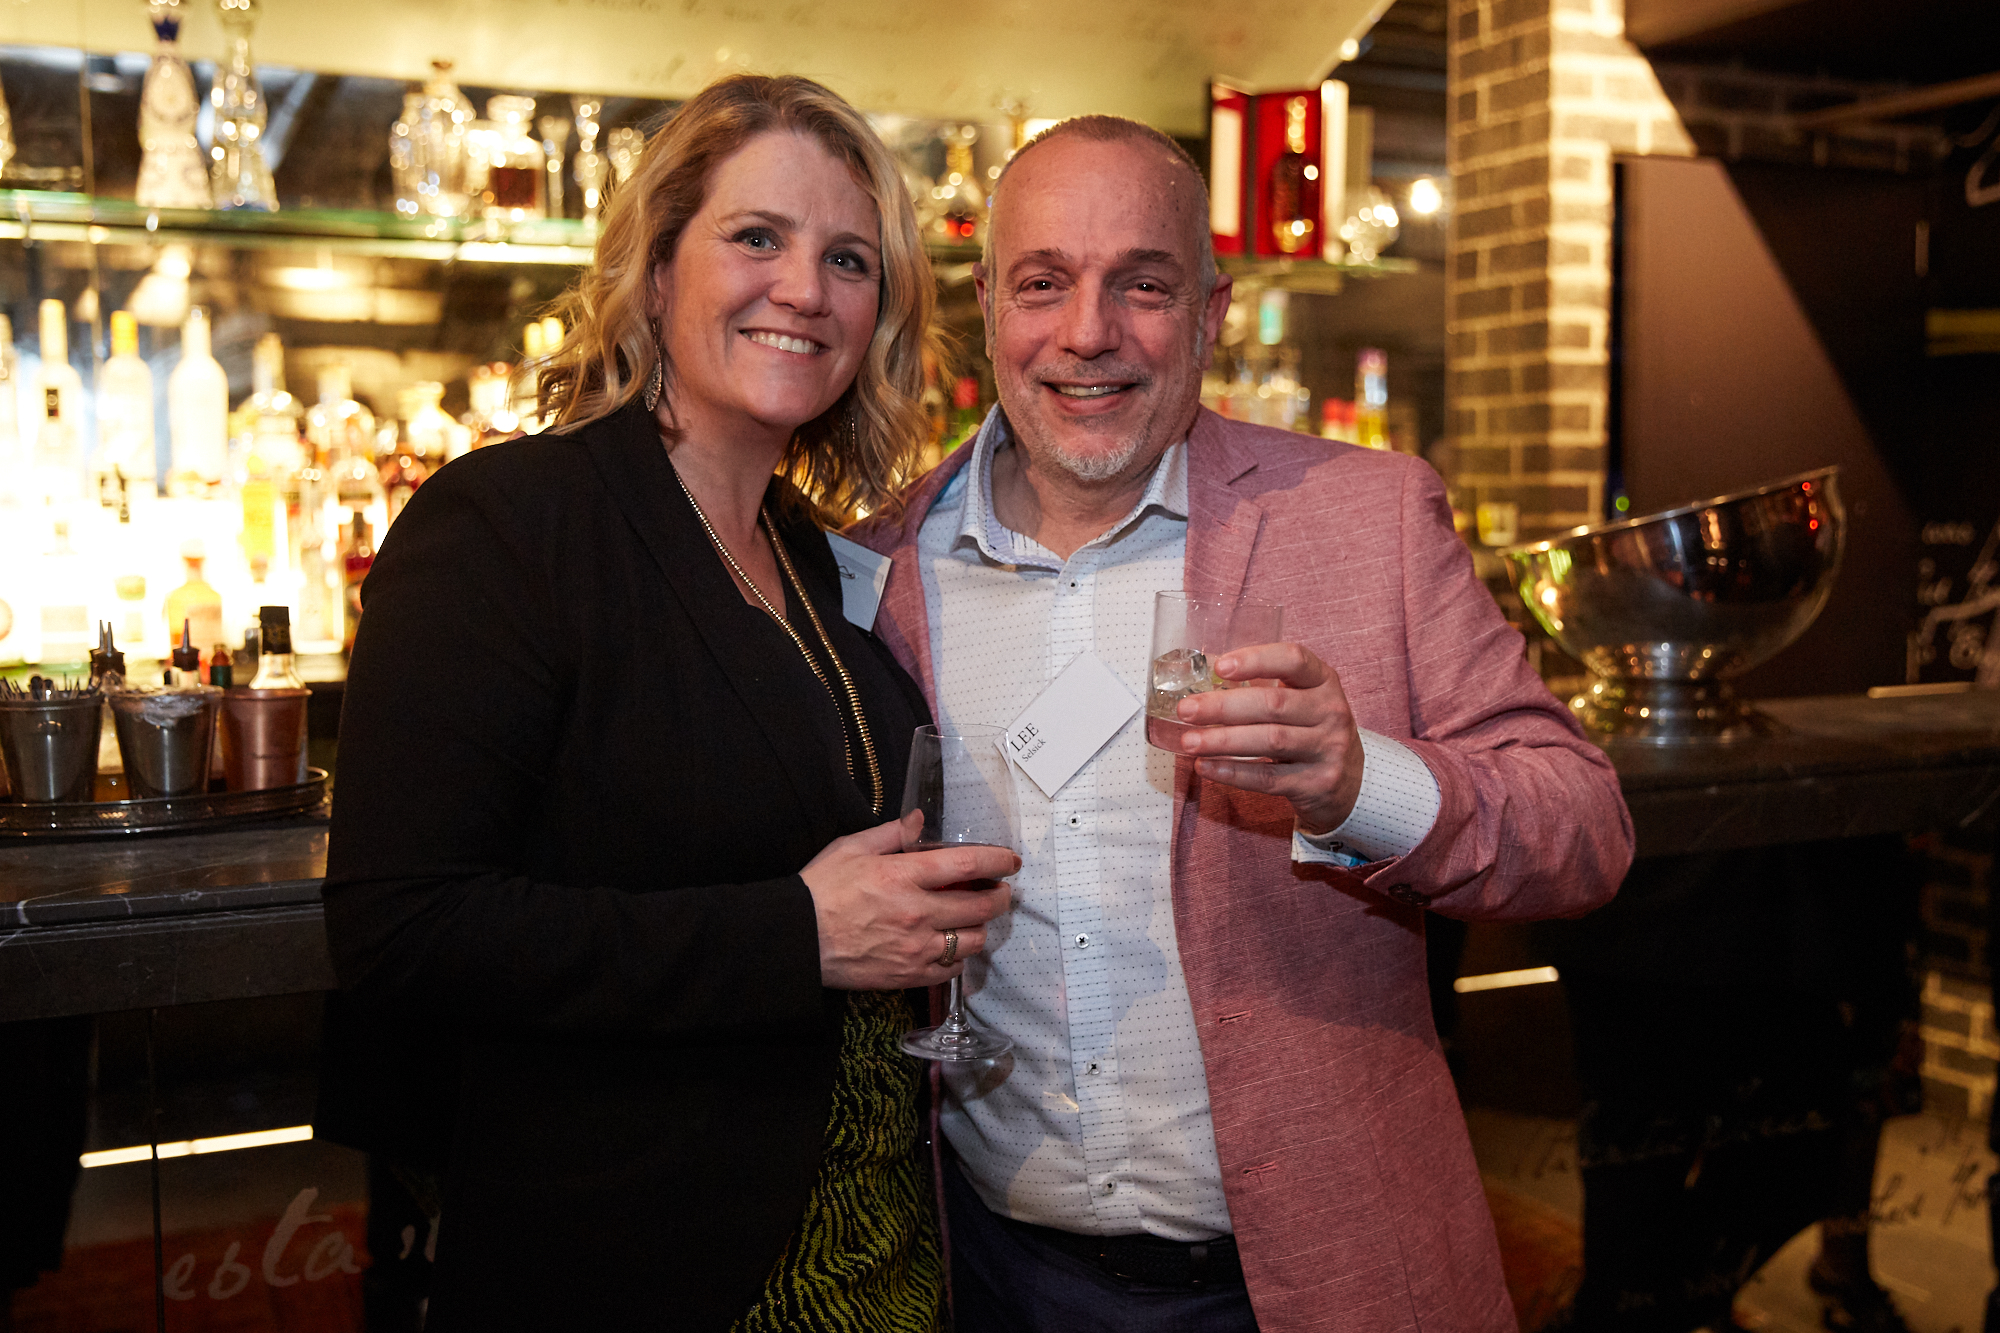 August 2019 - Winter Drinks Party at The Den